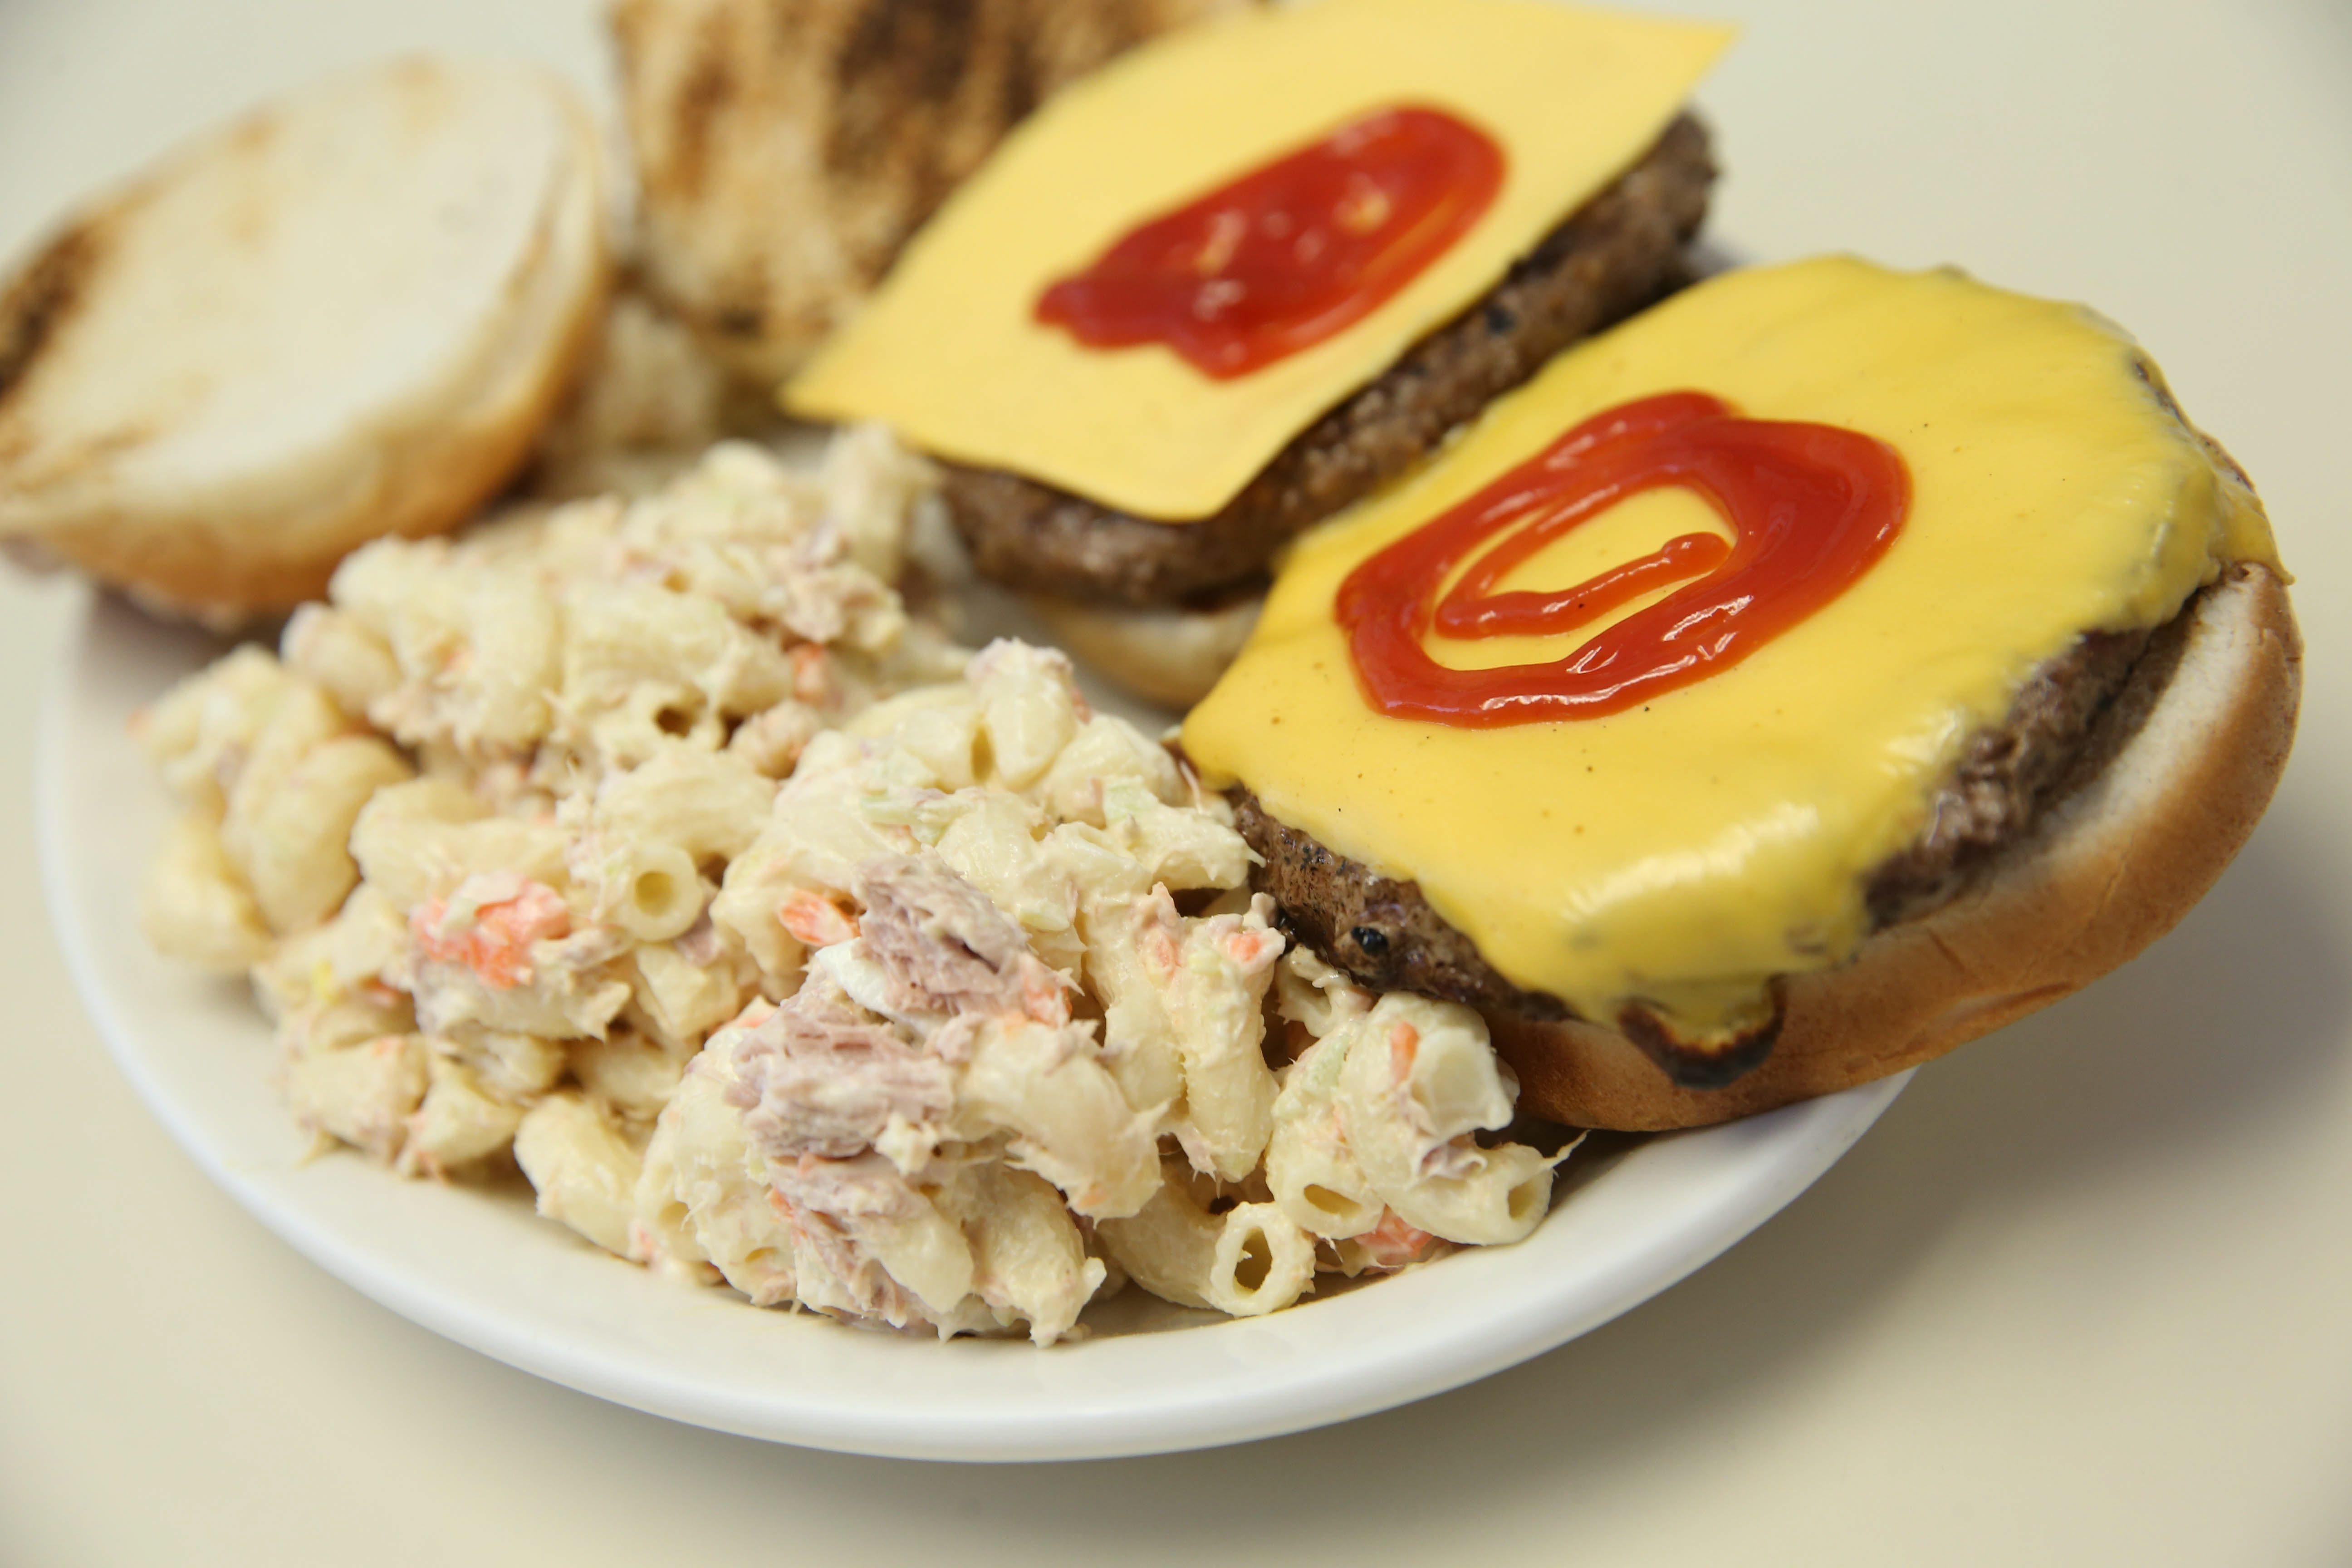 Summertime fare like cheeseburgers with housemade macaroni salad are a favorite at the Dog Shack.